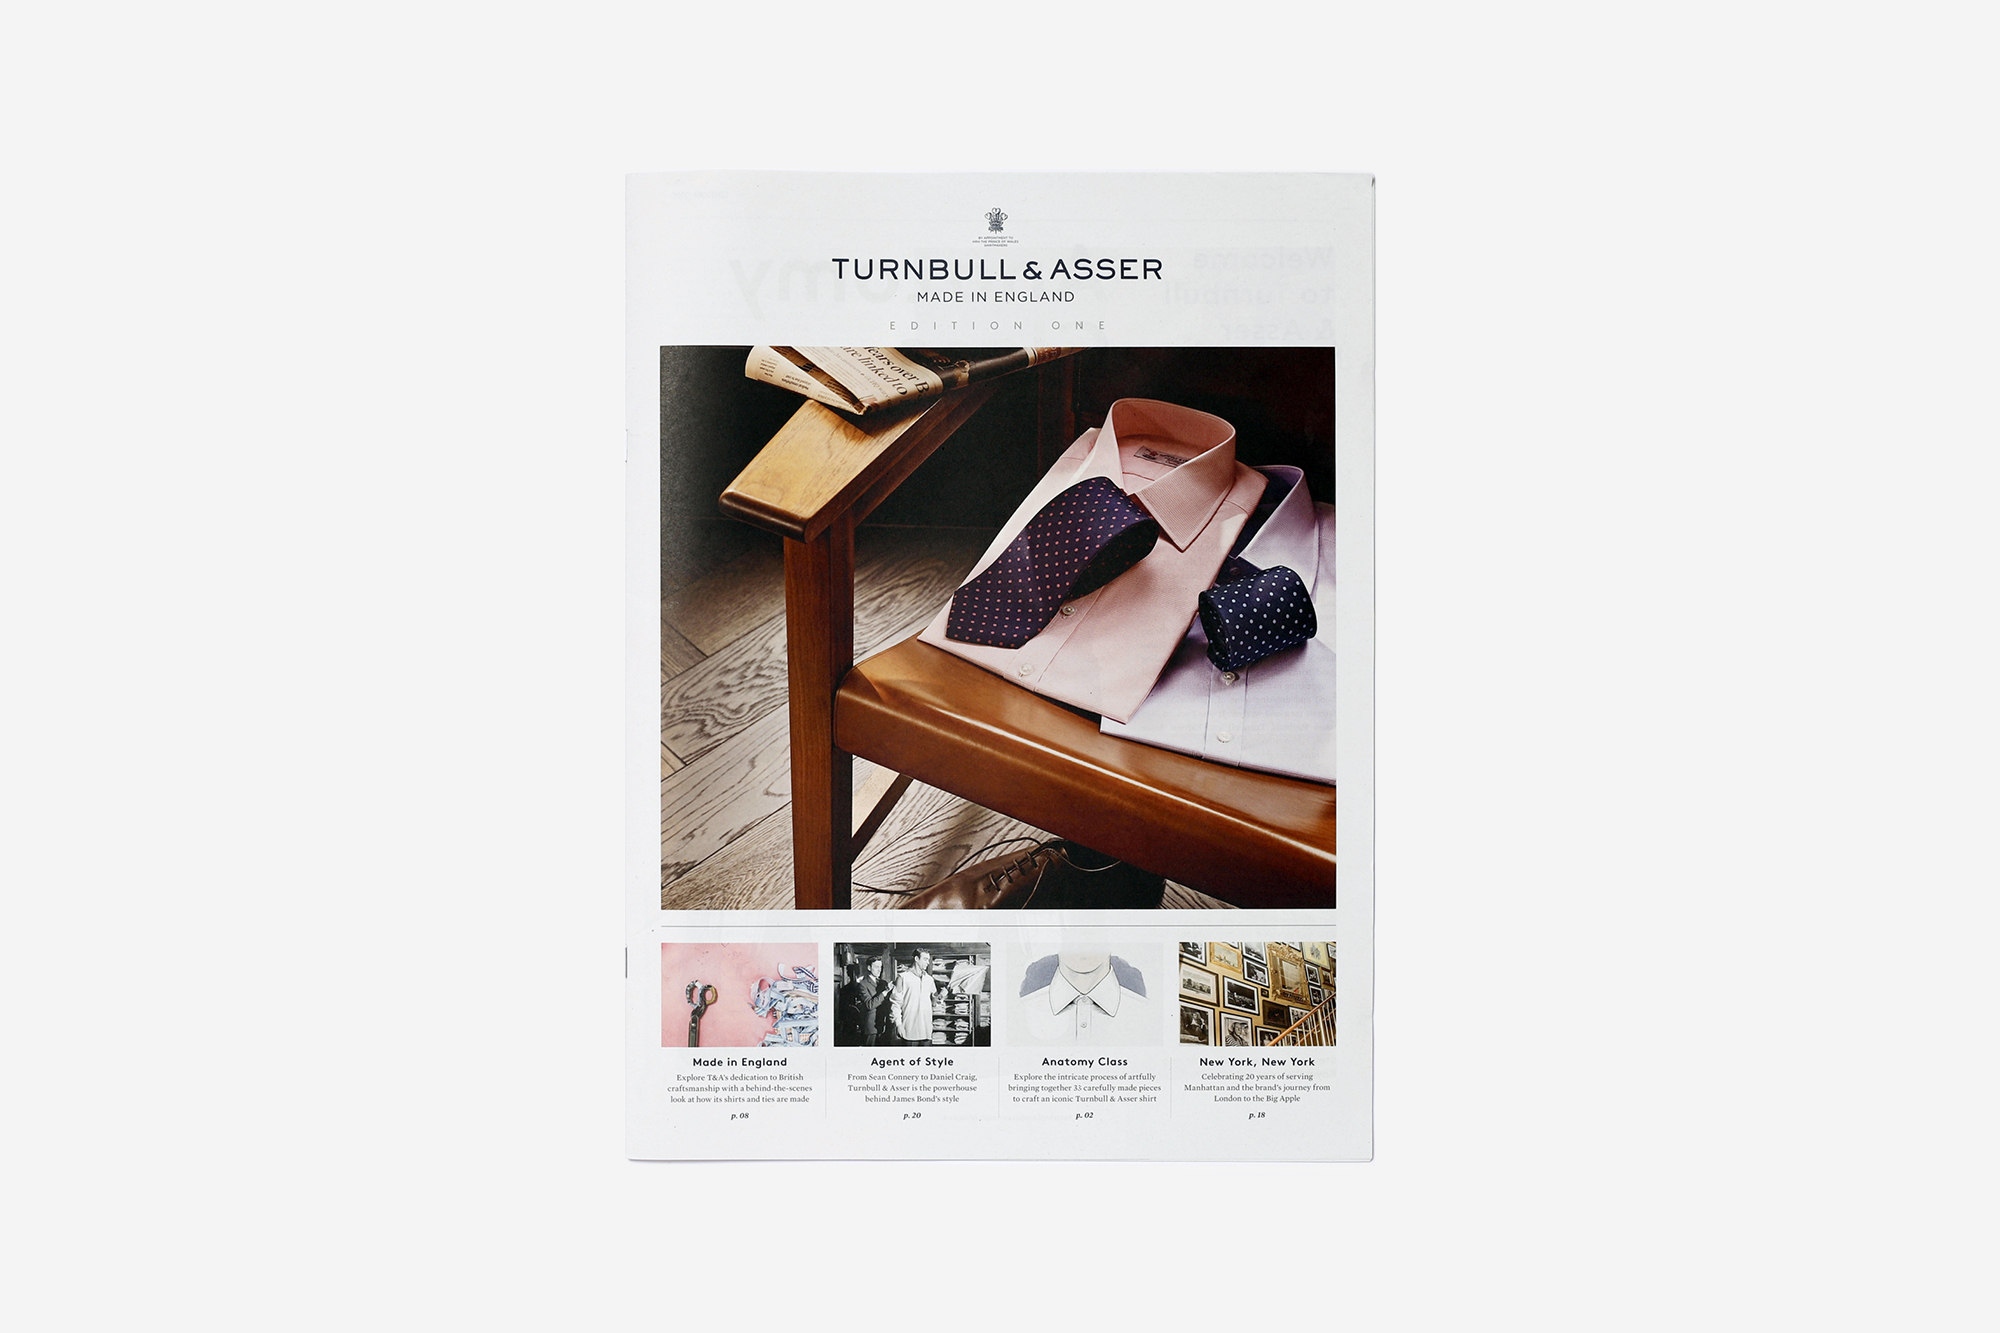 Turnbull & Asser newspaper